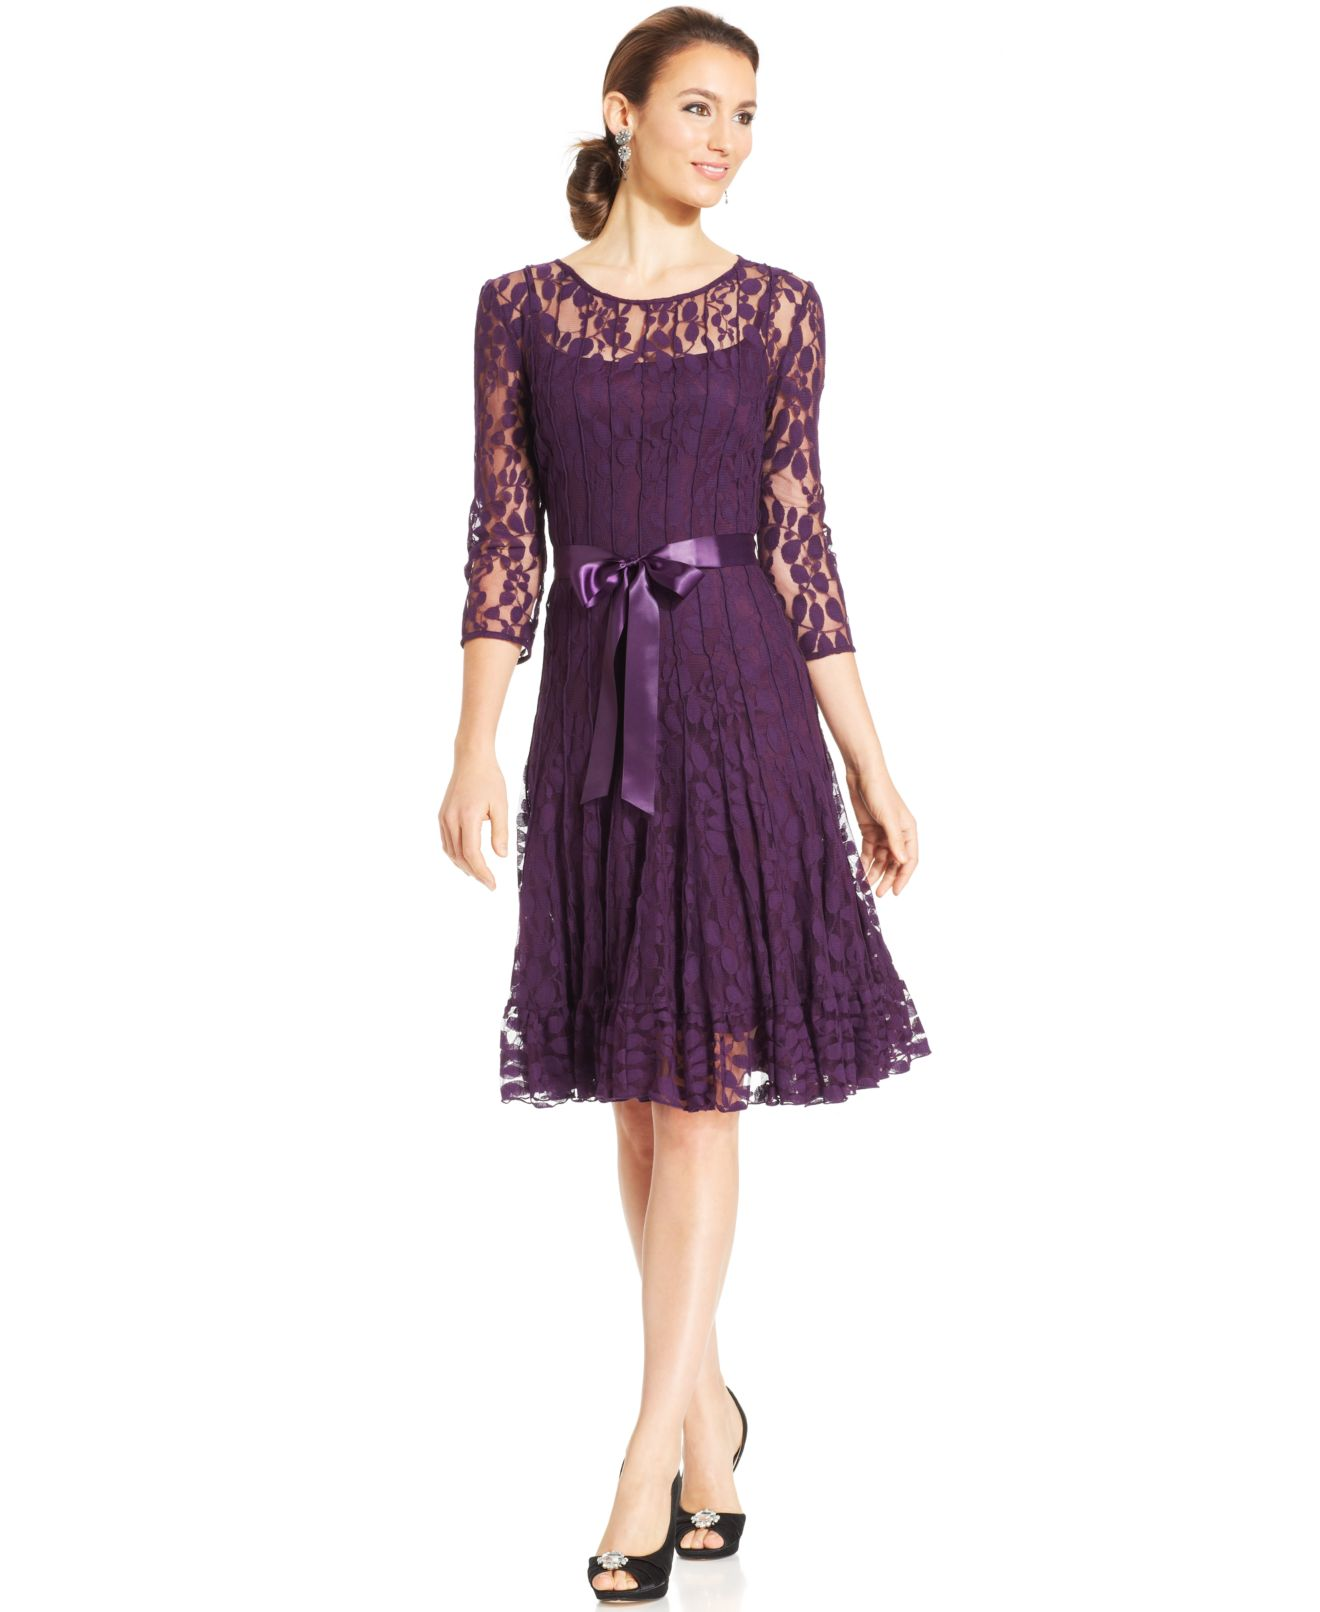 macys dresses with sleeves photo - 1